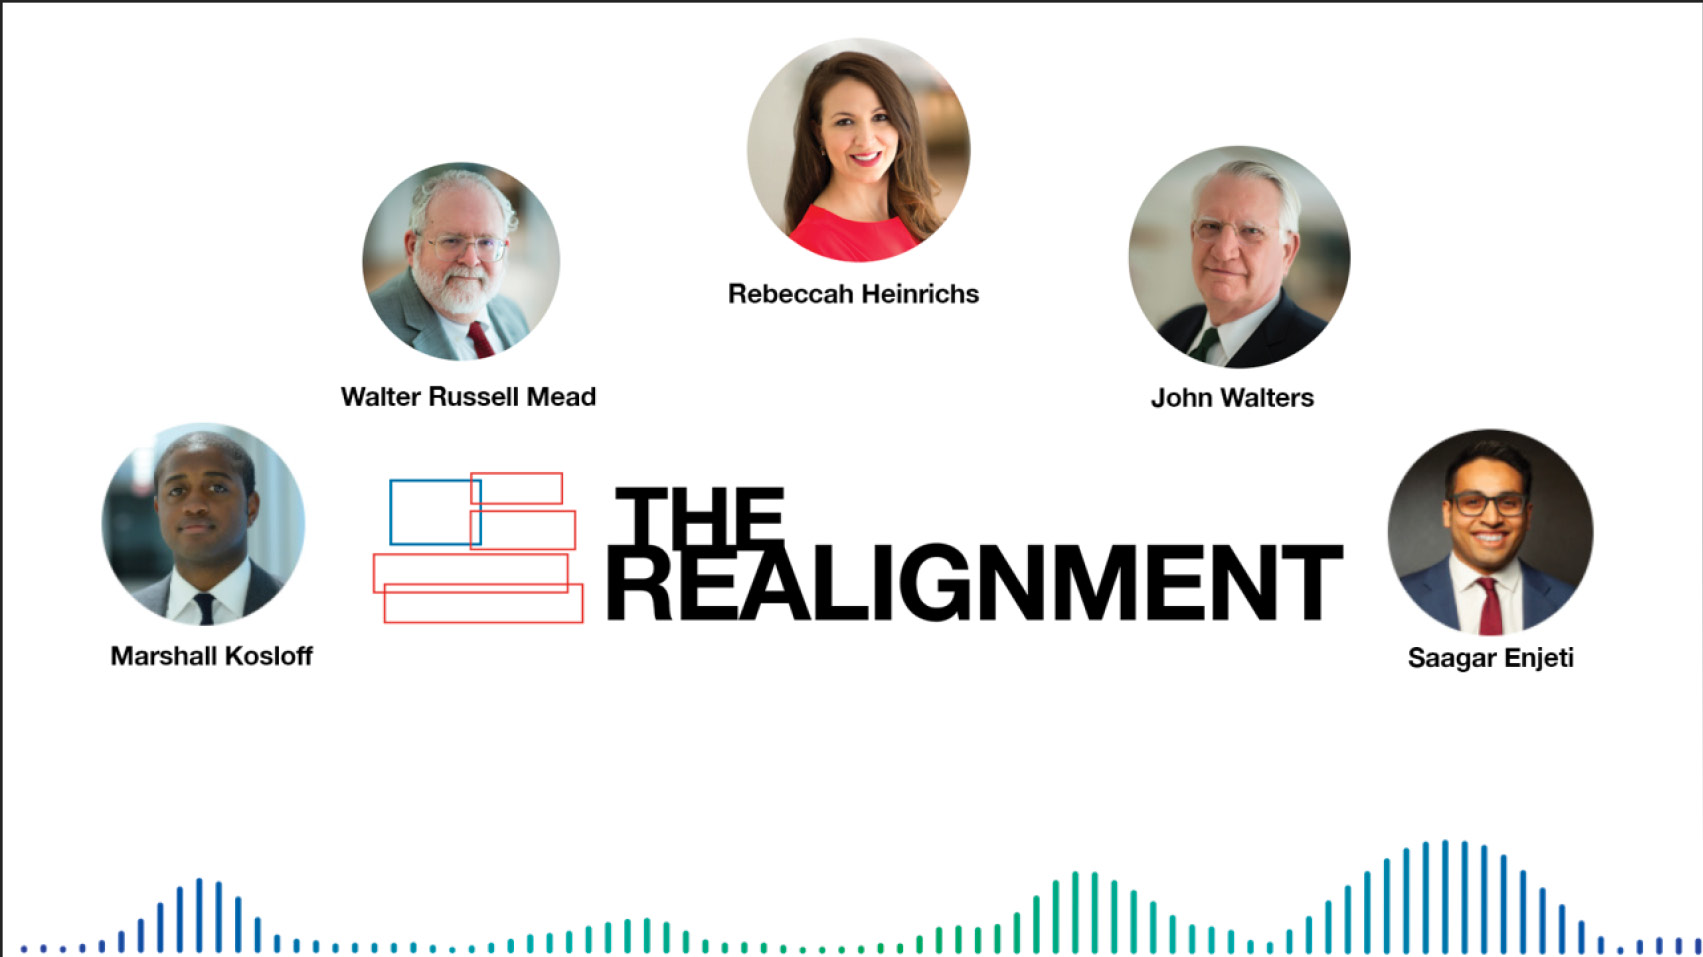 Walter Russell Mead, Rebeccah Heinrichs, and John Walters join The Realignment to discuss how the U.S., and the world at large, is reassessing national interests and national security in light of the COVID-19 outbreak.